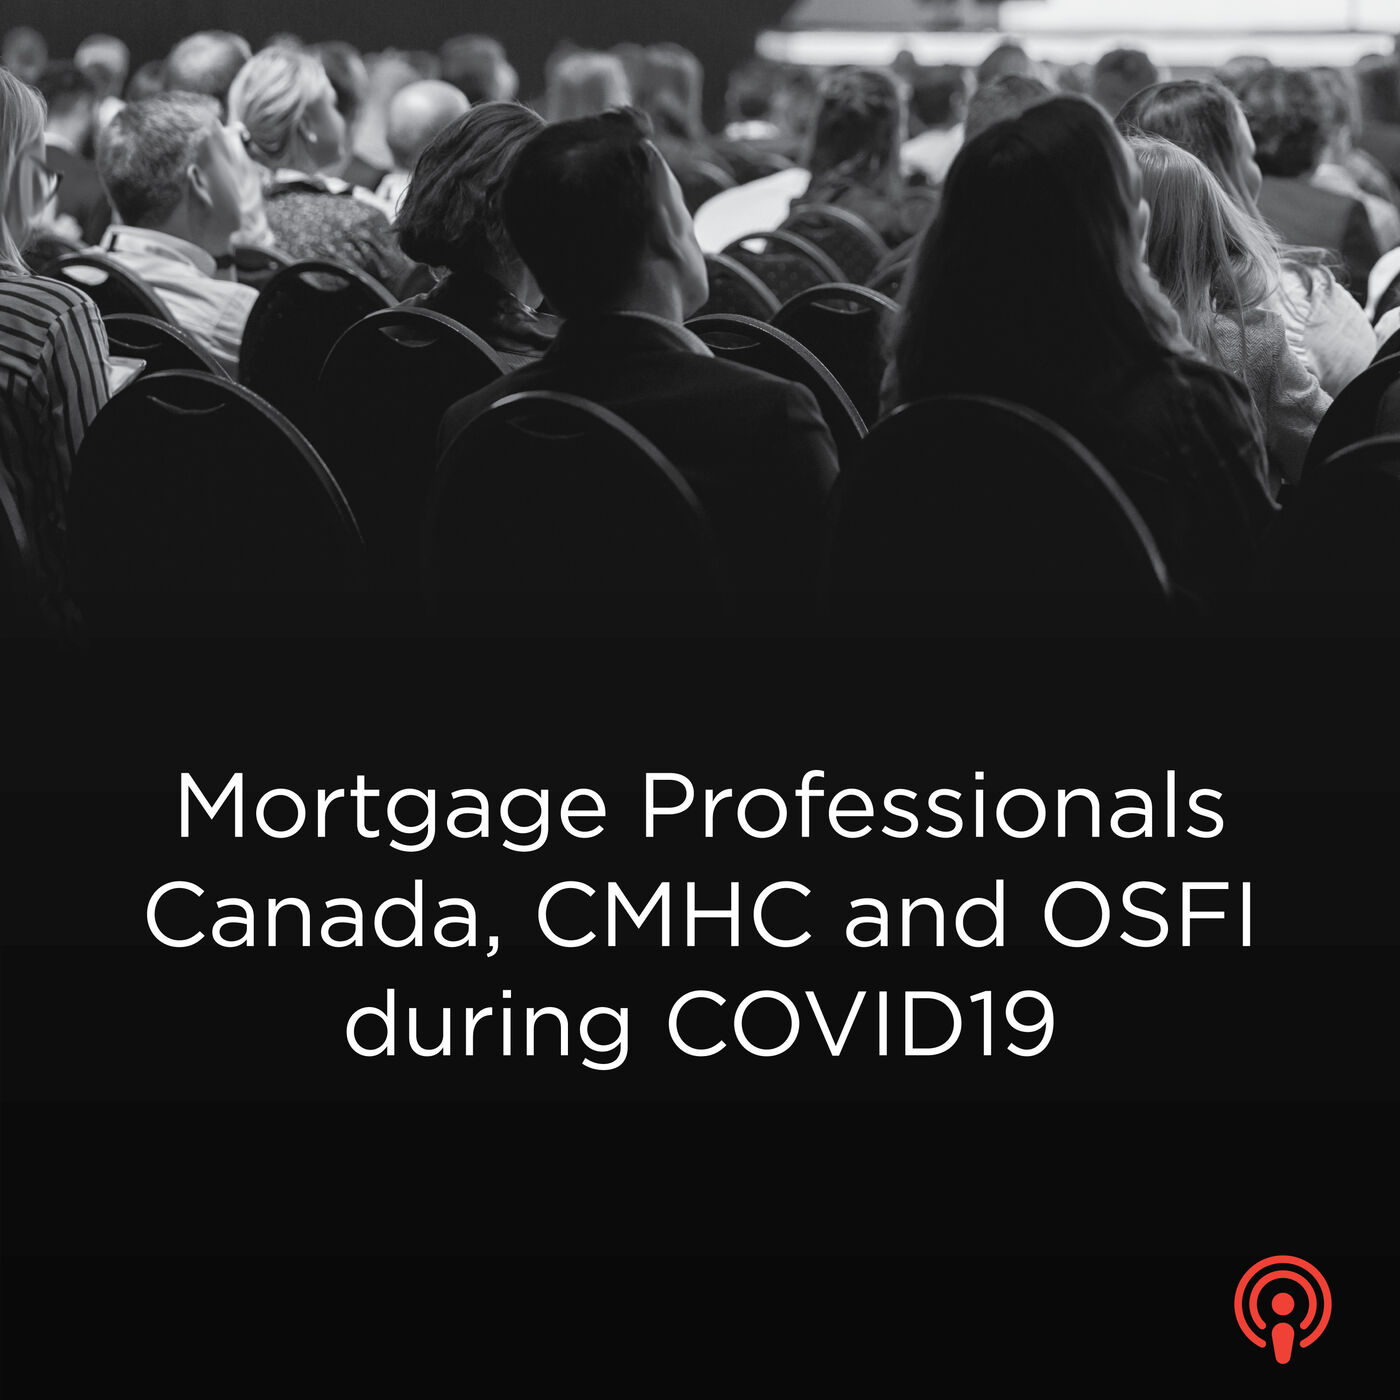 Mortgage Professionals Canada, CMHC and OSFI during COVID19